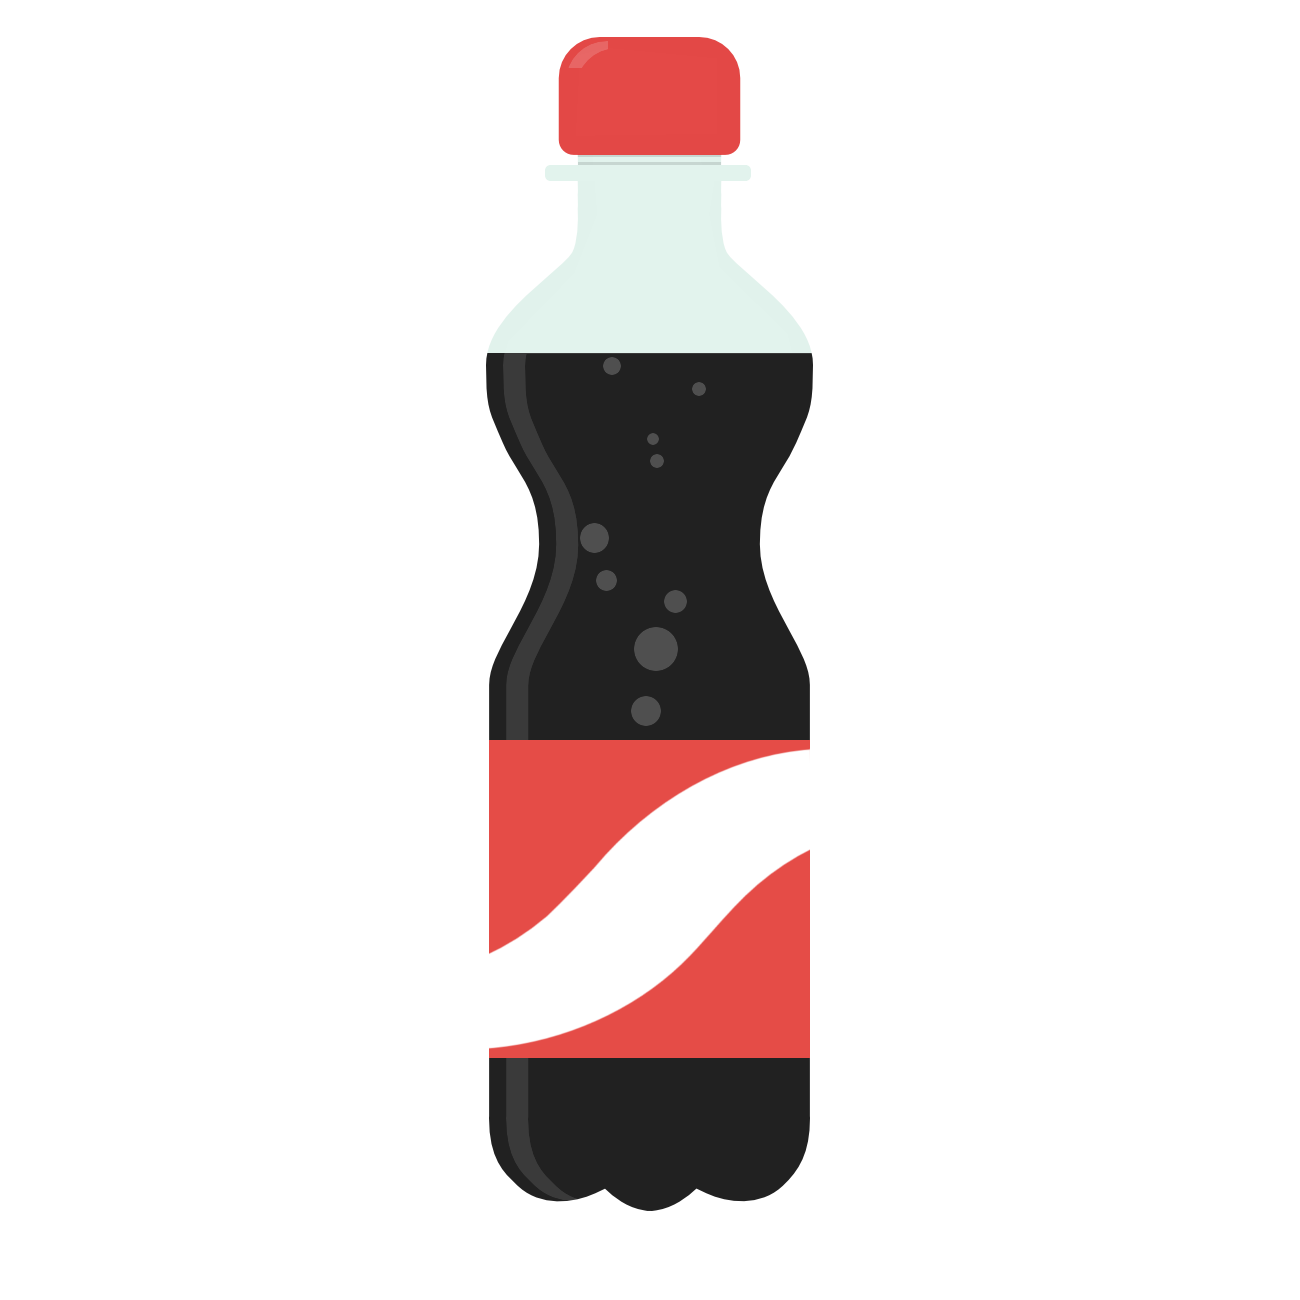 Icons opengameart org bottlecolapng. Soda bottle png